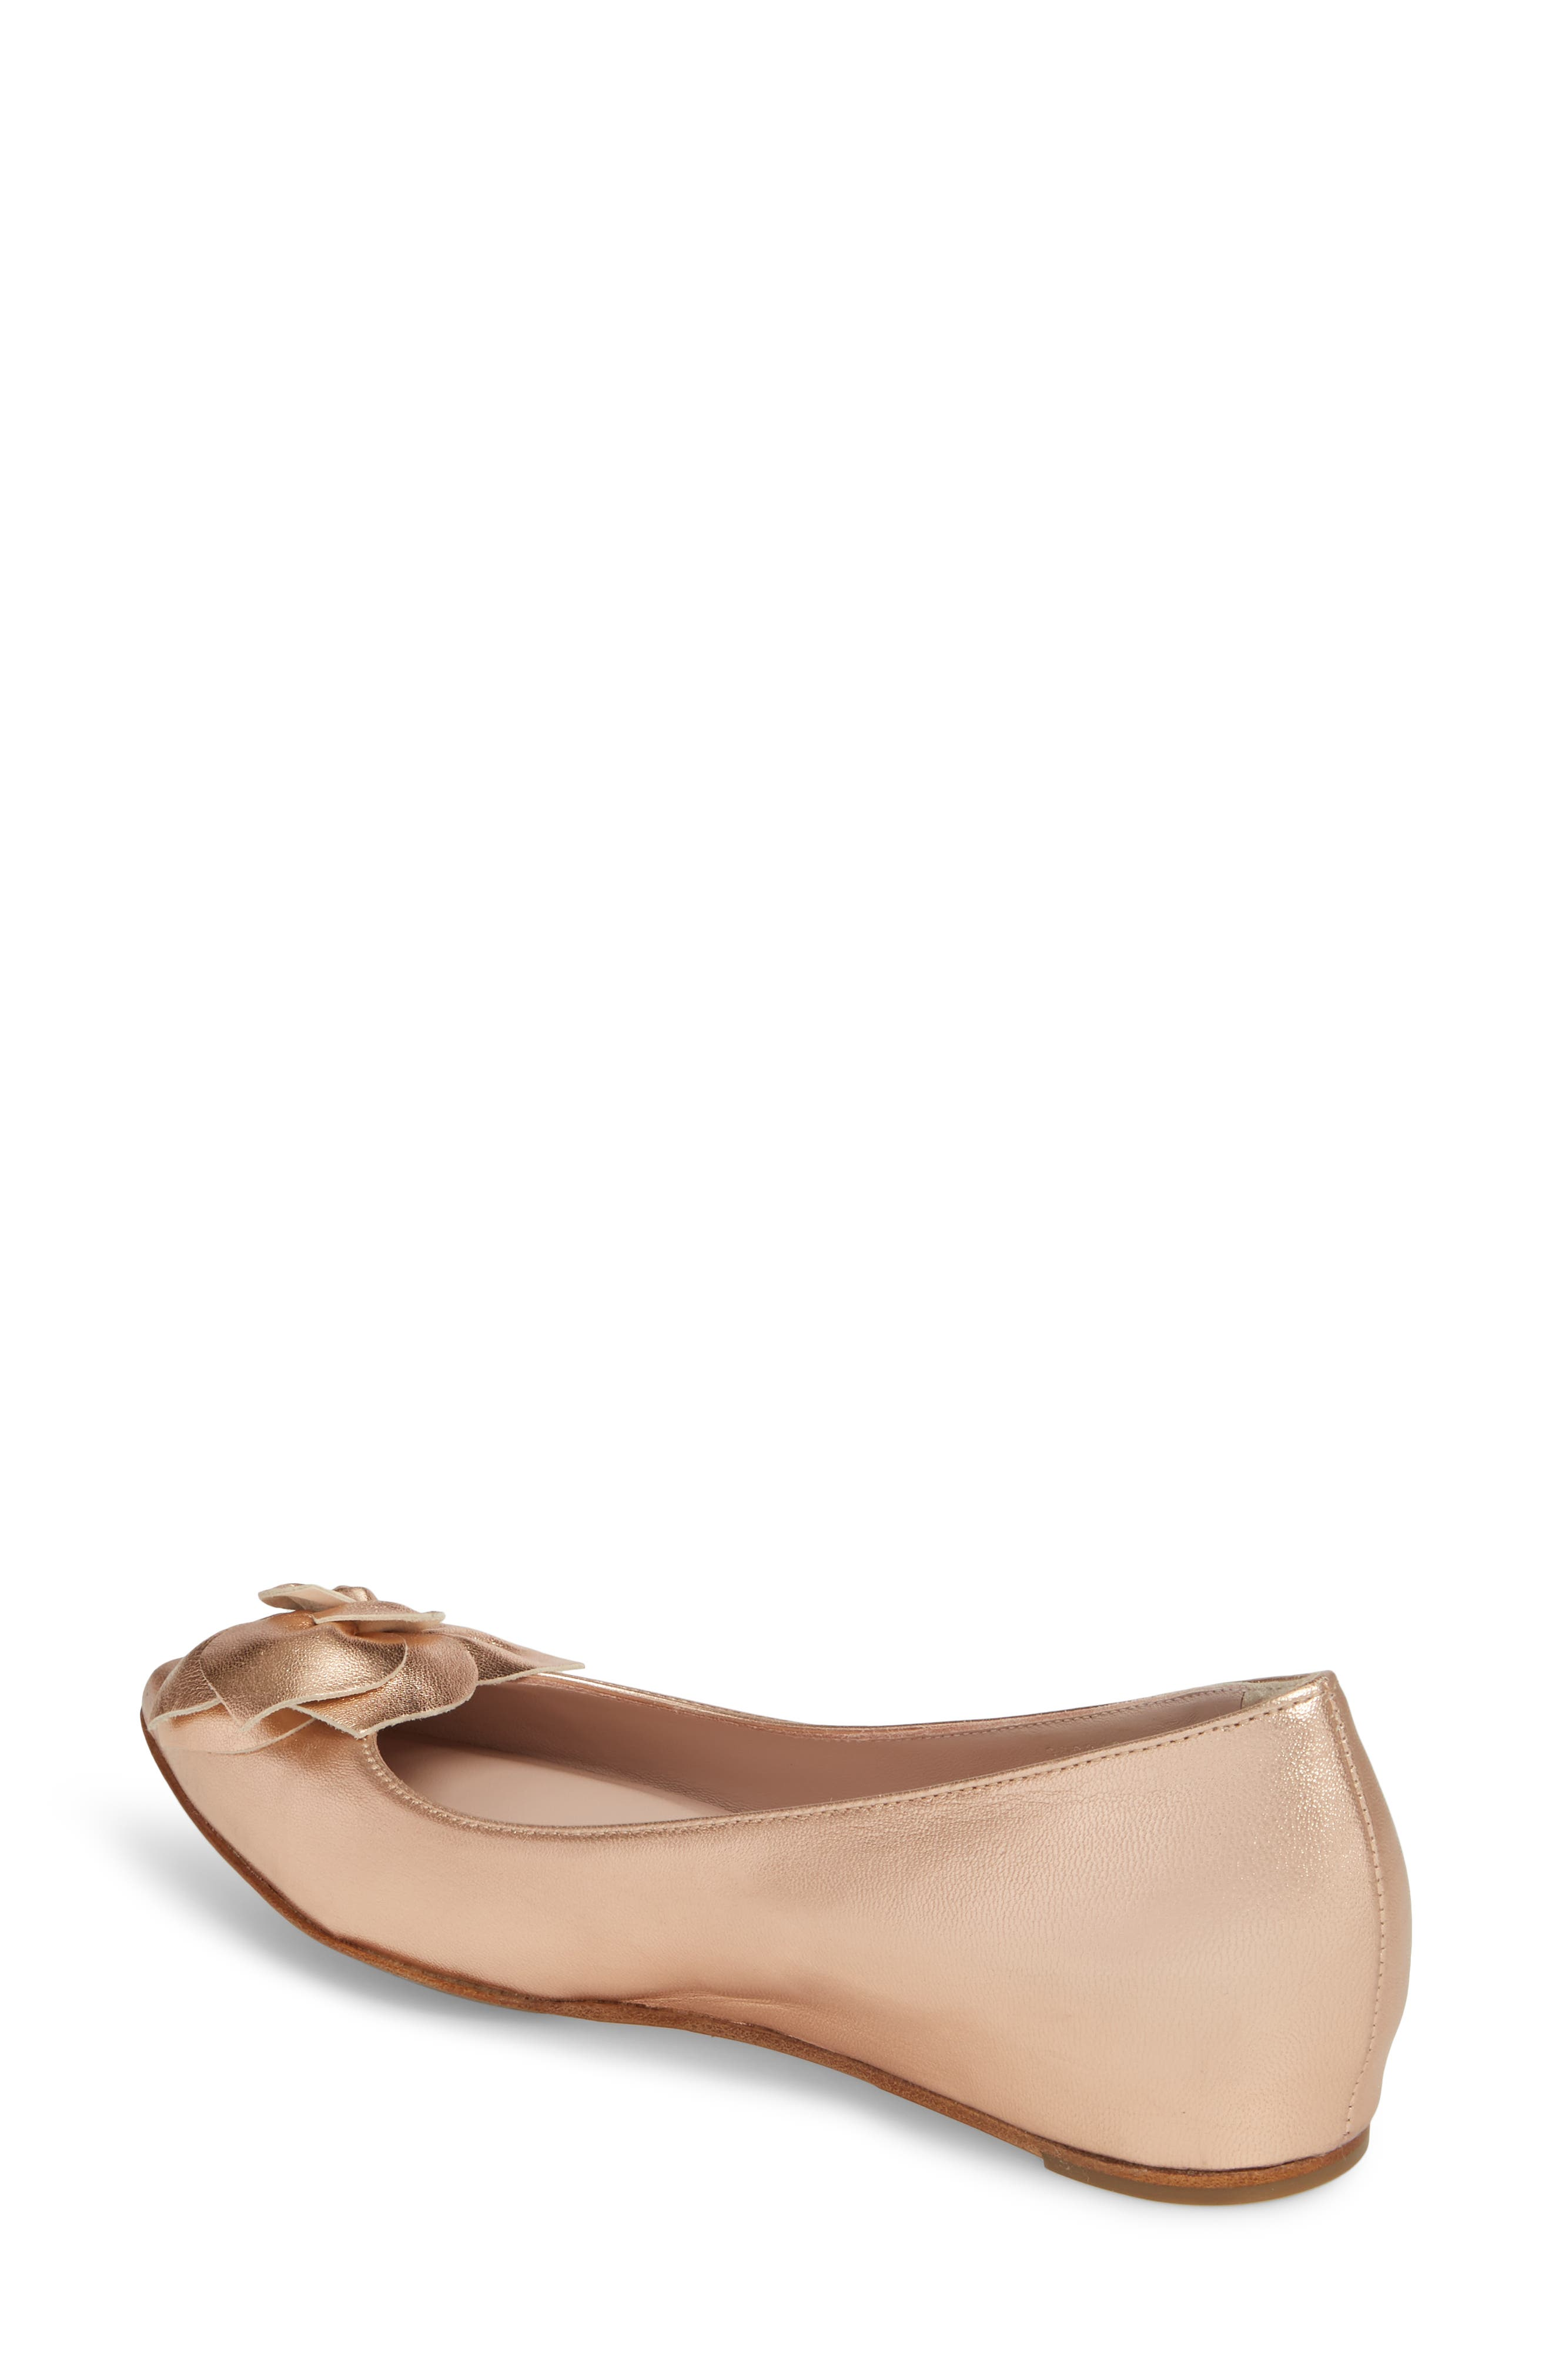 Rialta Flat,                             Alternate thumbnail 2, color,                             ROSE GOLD LEATHER